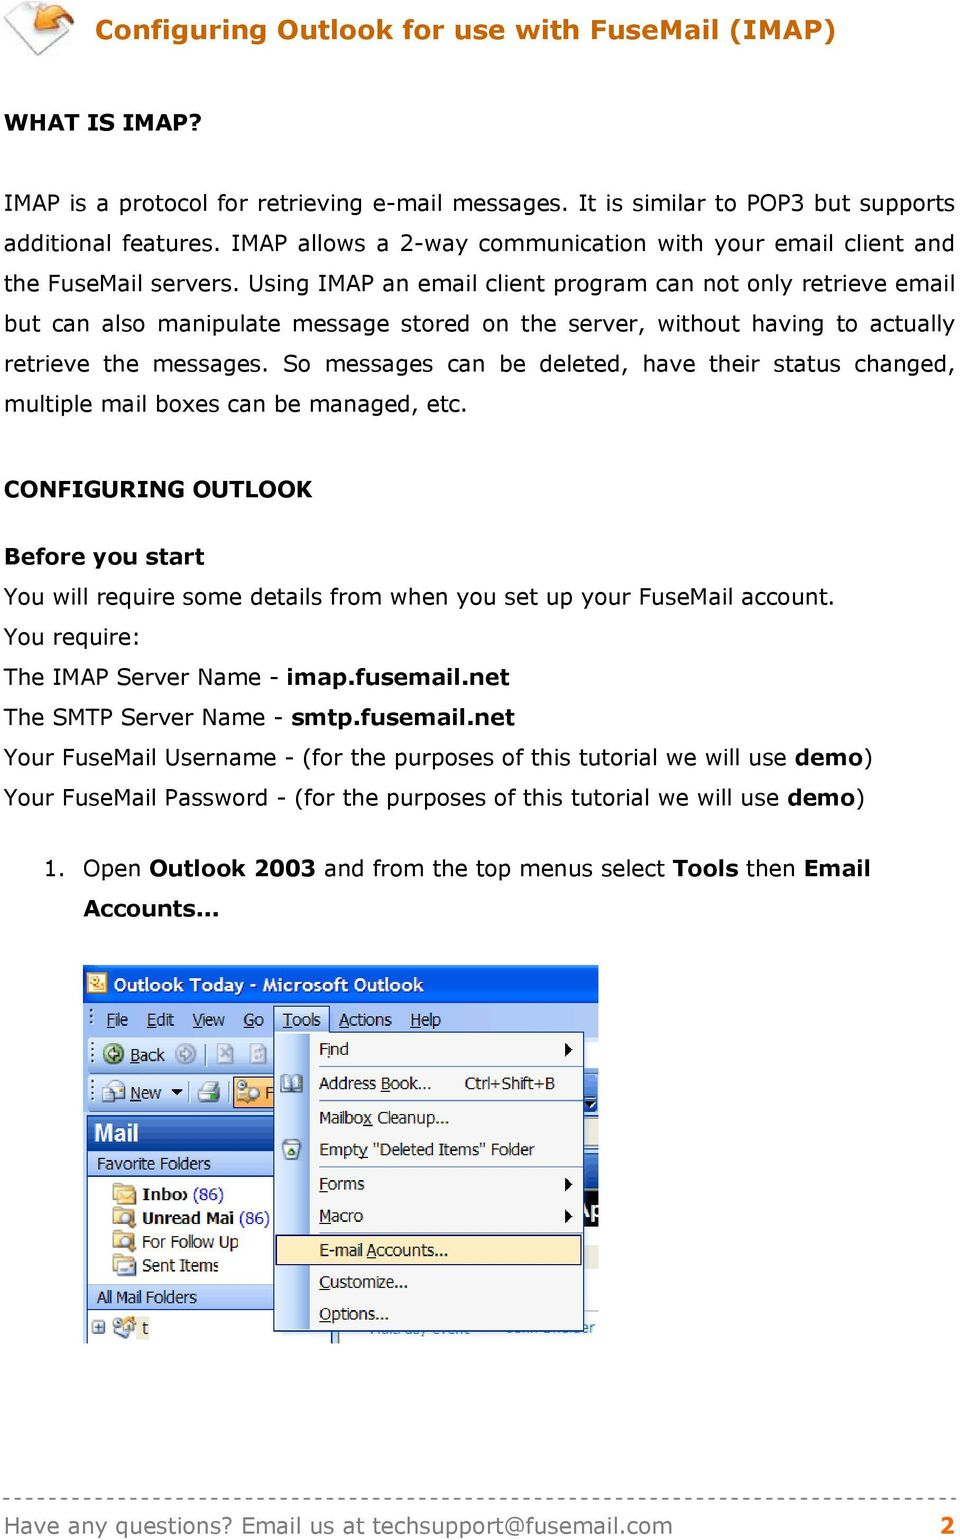 USING MS OUTLOOK WITH FUS - PDF